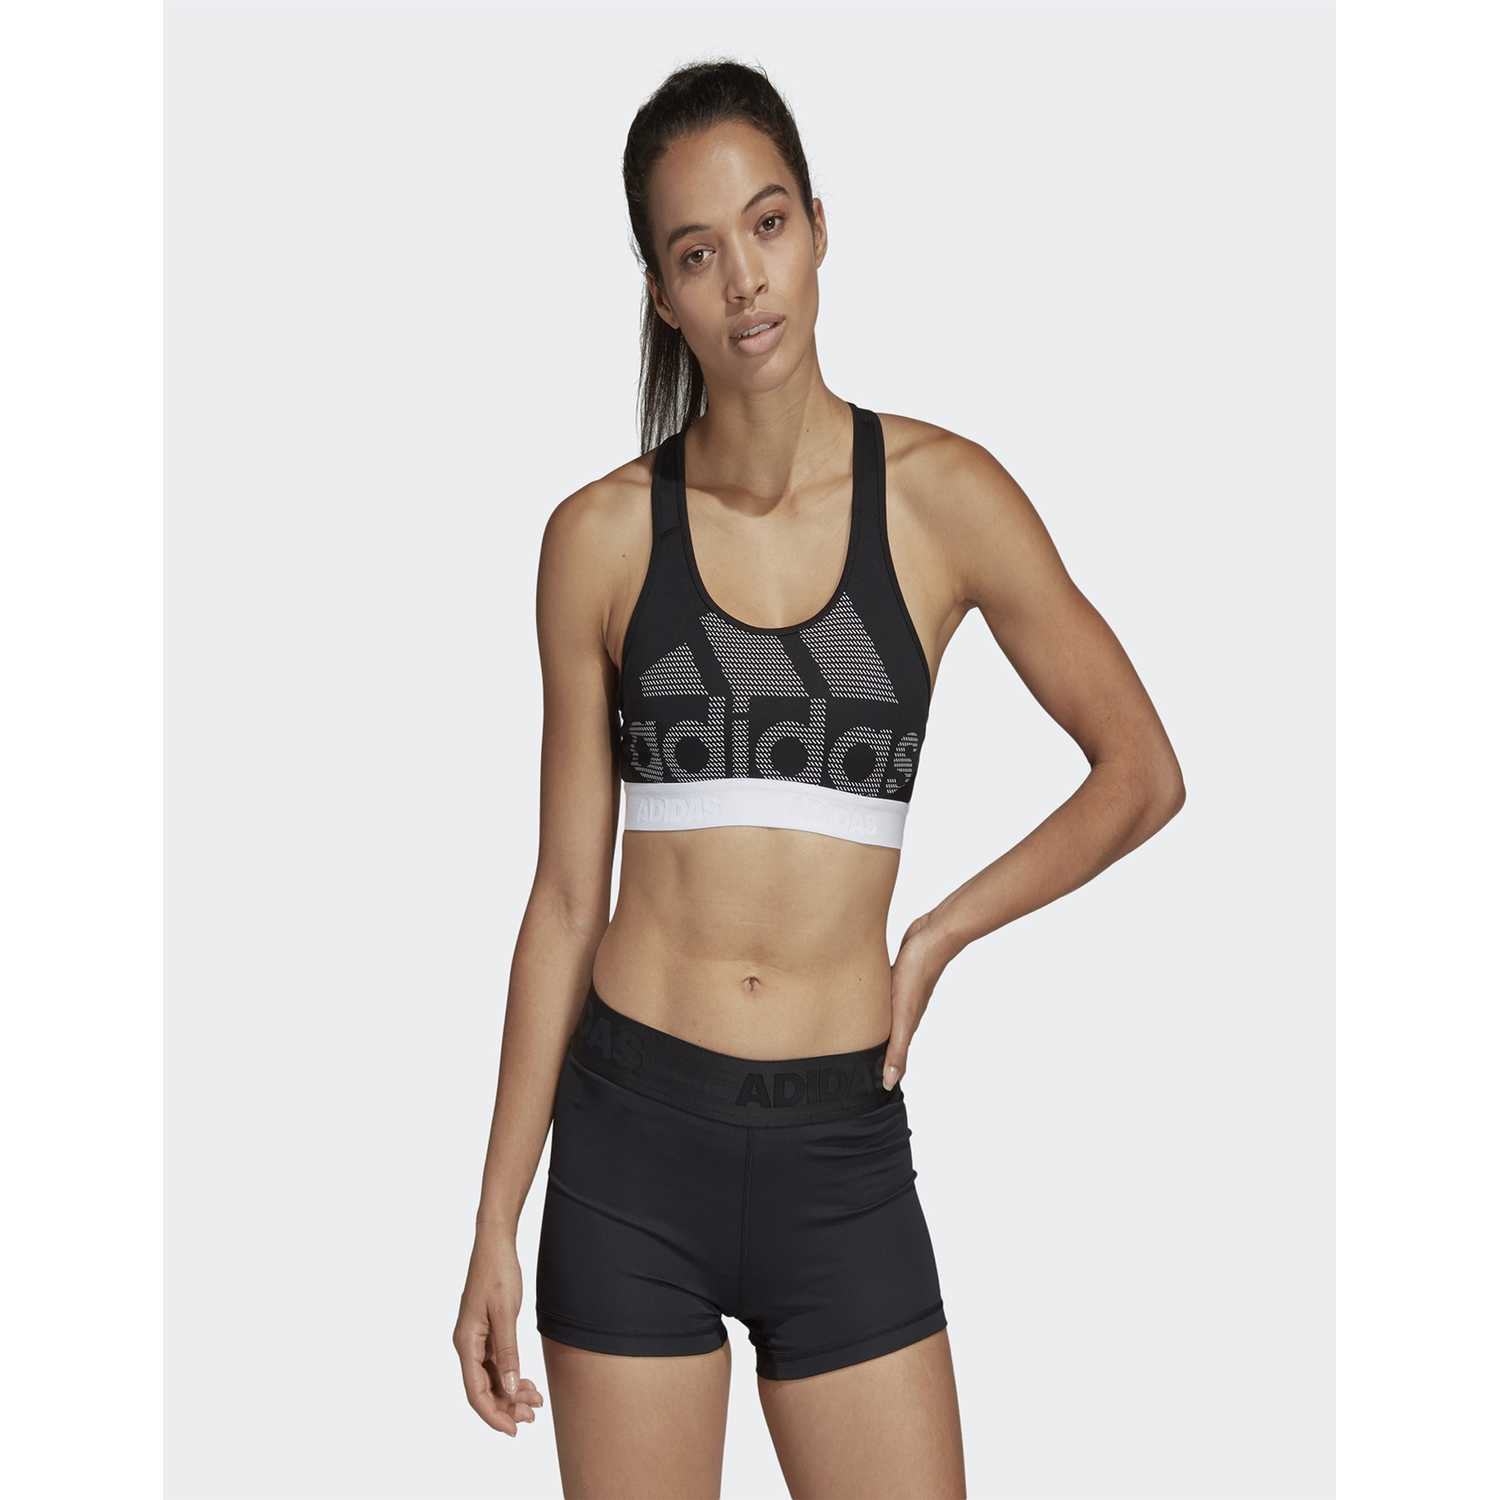 Top de Mujer Adidas Negro drst ask spr lg